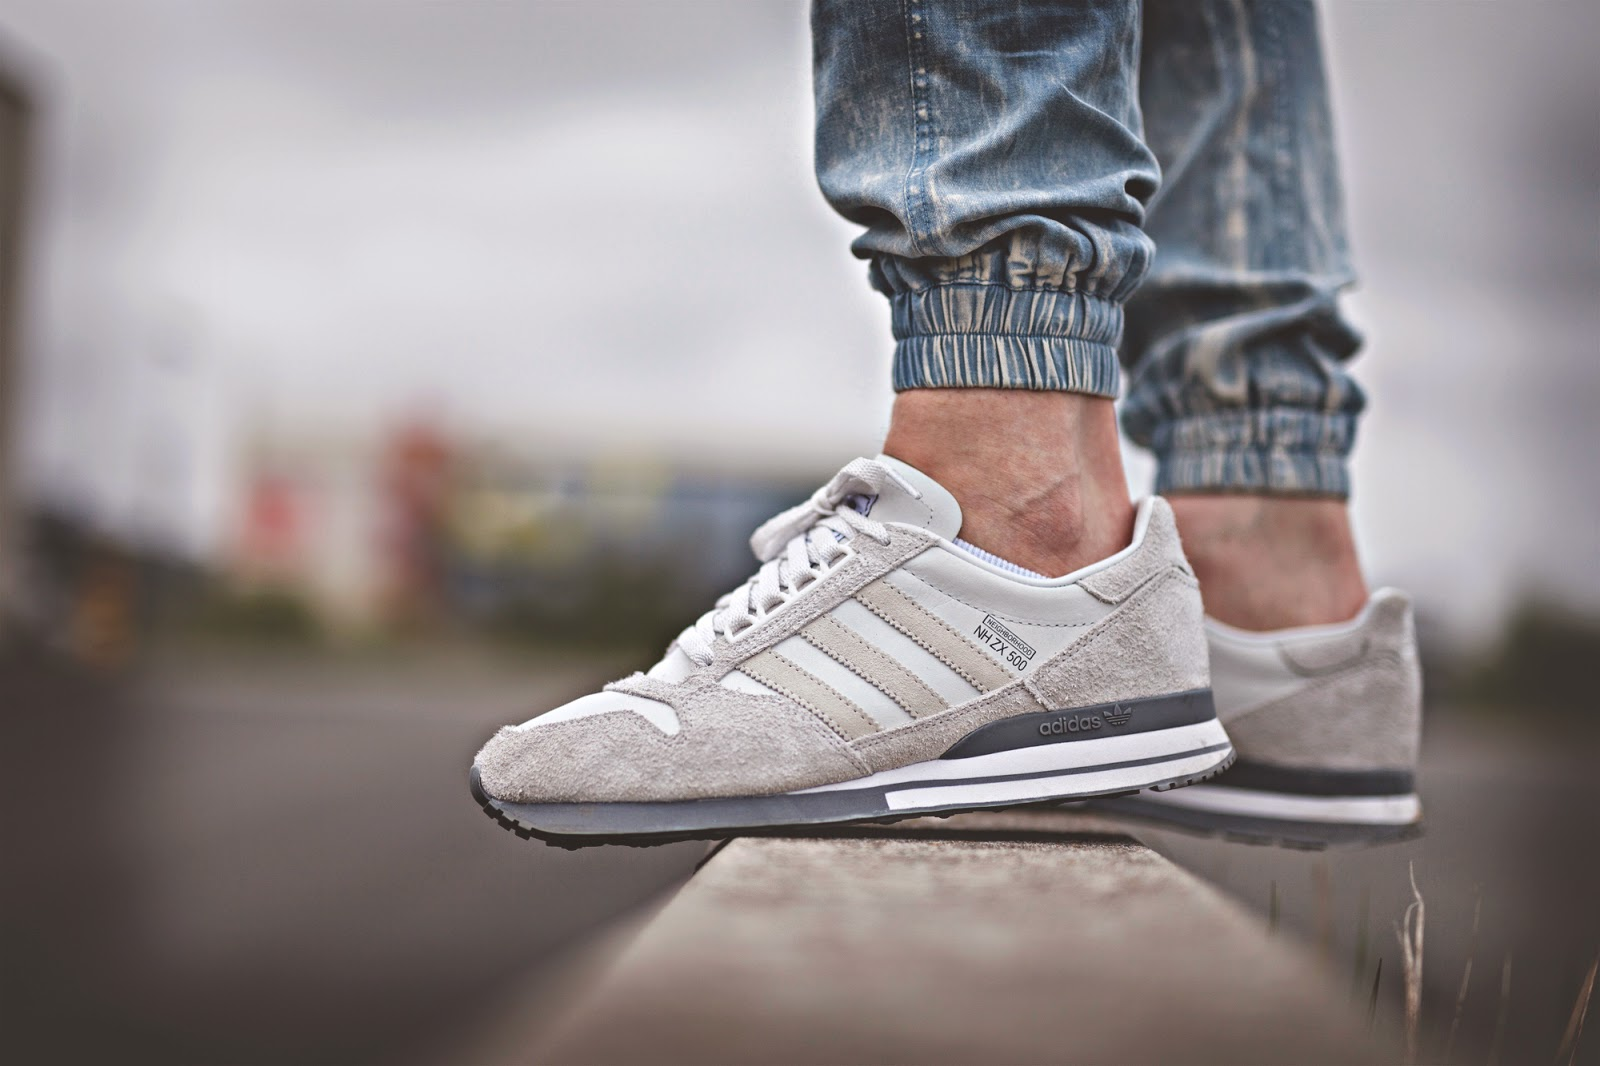 adidas zx 500 neighborhood